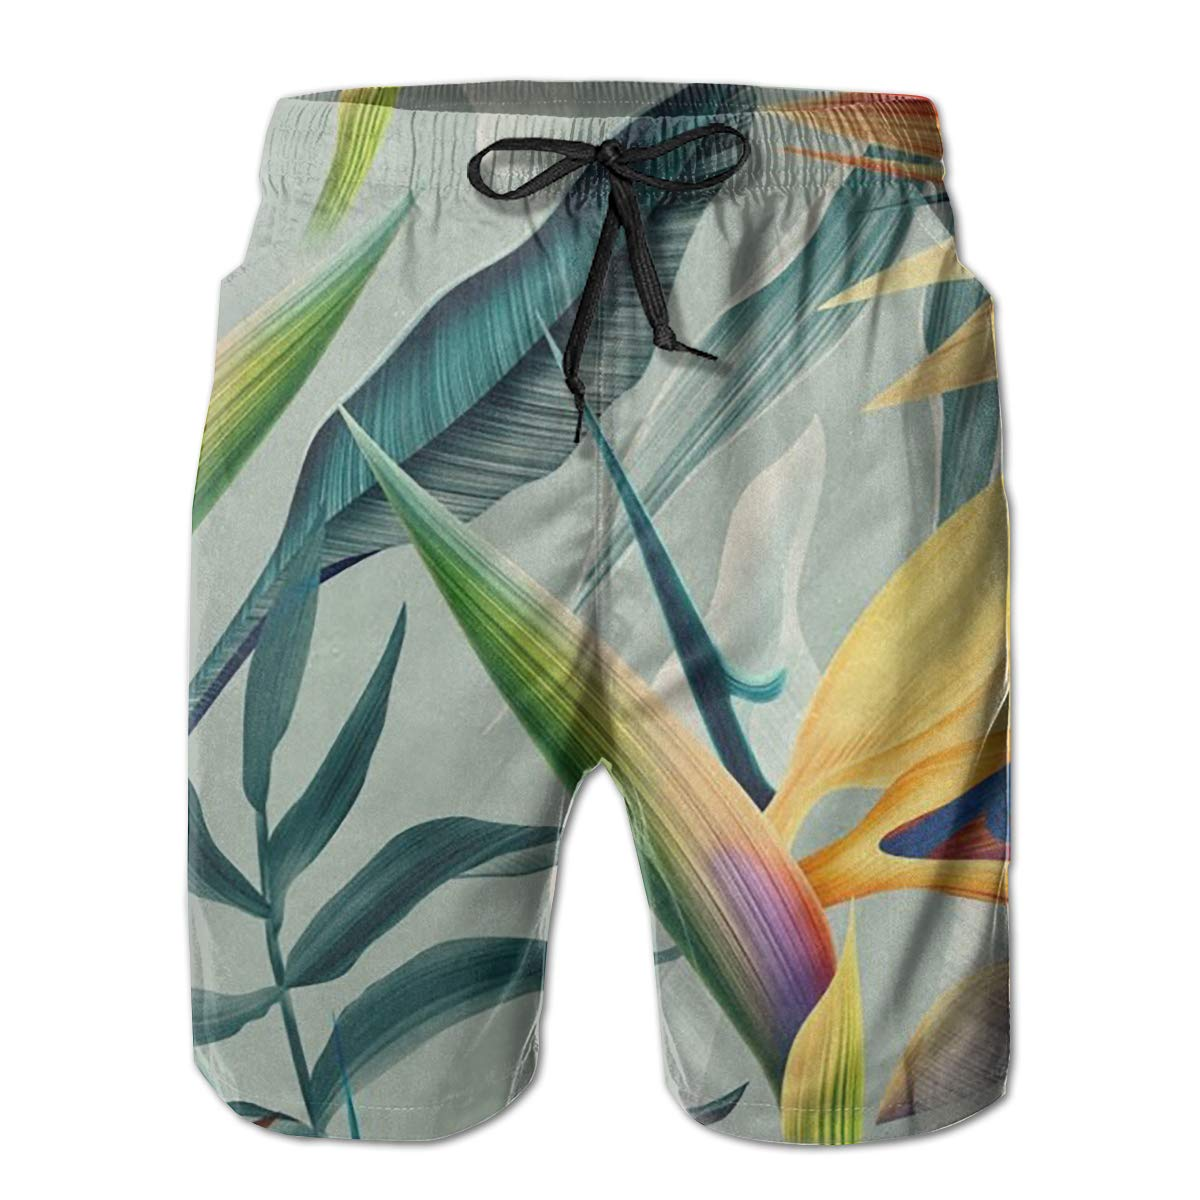 Birds of Paradise Flower Mens Beach Shorts Summer Casual Swim Trunks with Pockets